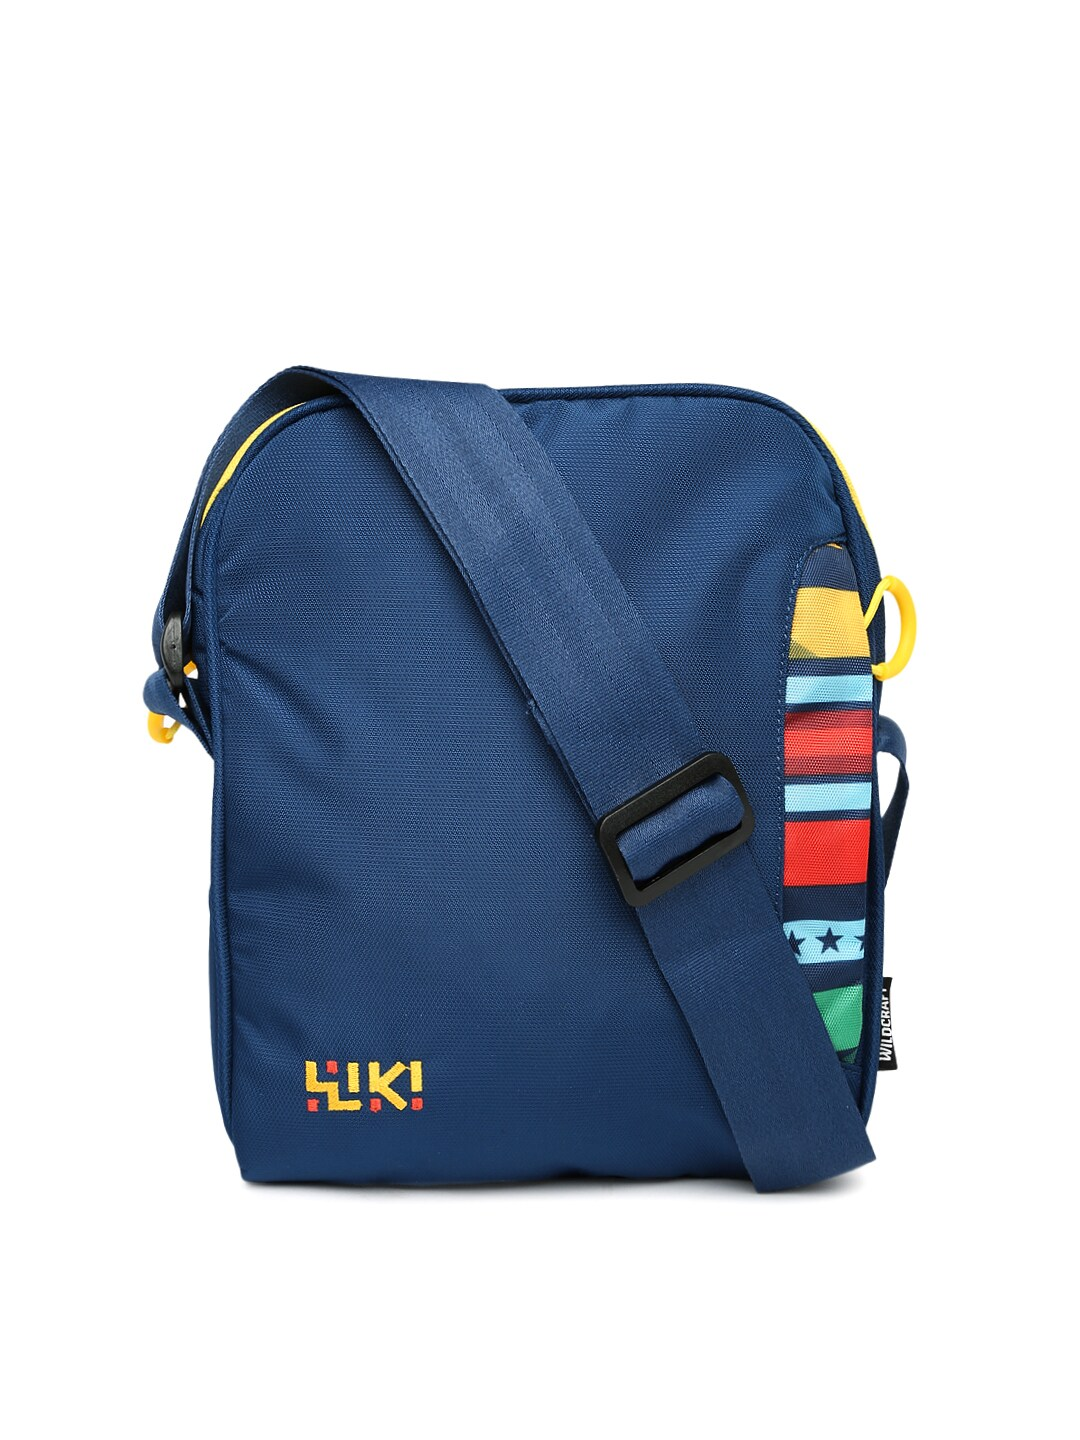 2cd88ac9d Wildcraft 8903338053866 Wiki By Blue Sling Bag - Best Price in India ...